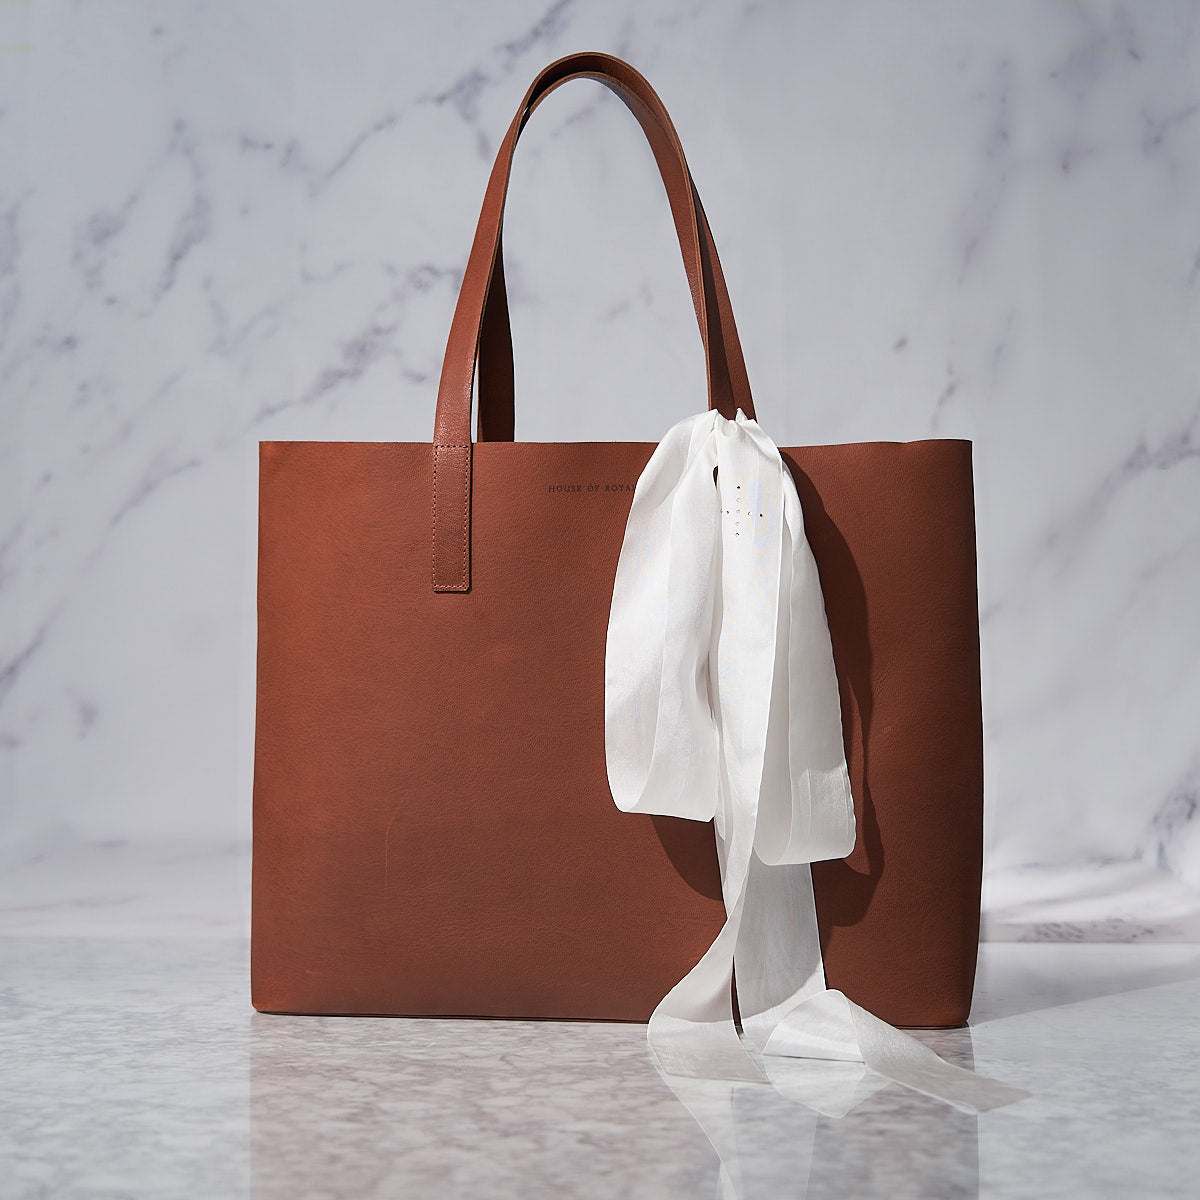 Beauty Lies Within You Leather Tote with Silk Ribbon - Limited Edition